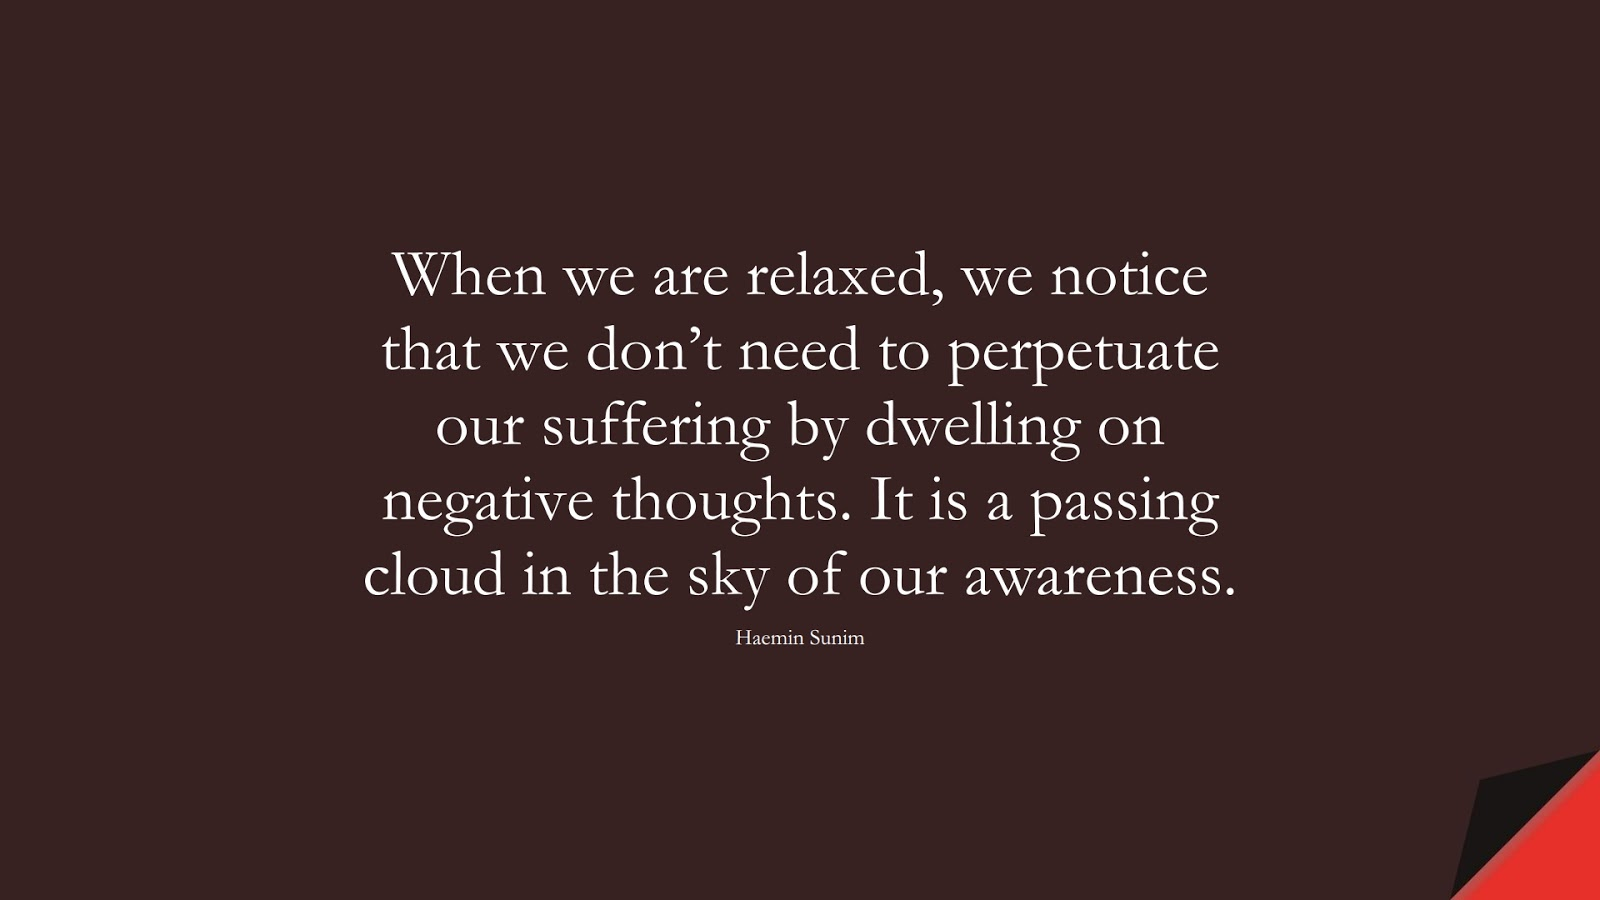 When we are relaxed, we notice that we don't need to perpetuate our suffering by dwelling on negative thoughts. It is a passing cloud in the sky of our awareness. (Haemin Sunim);  #CalmQuotes